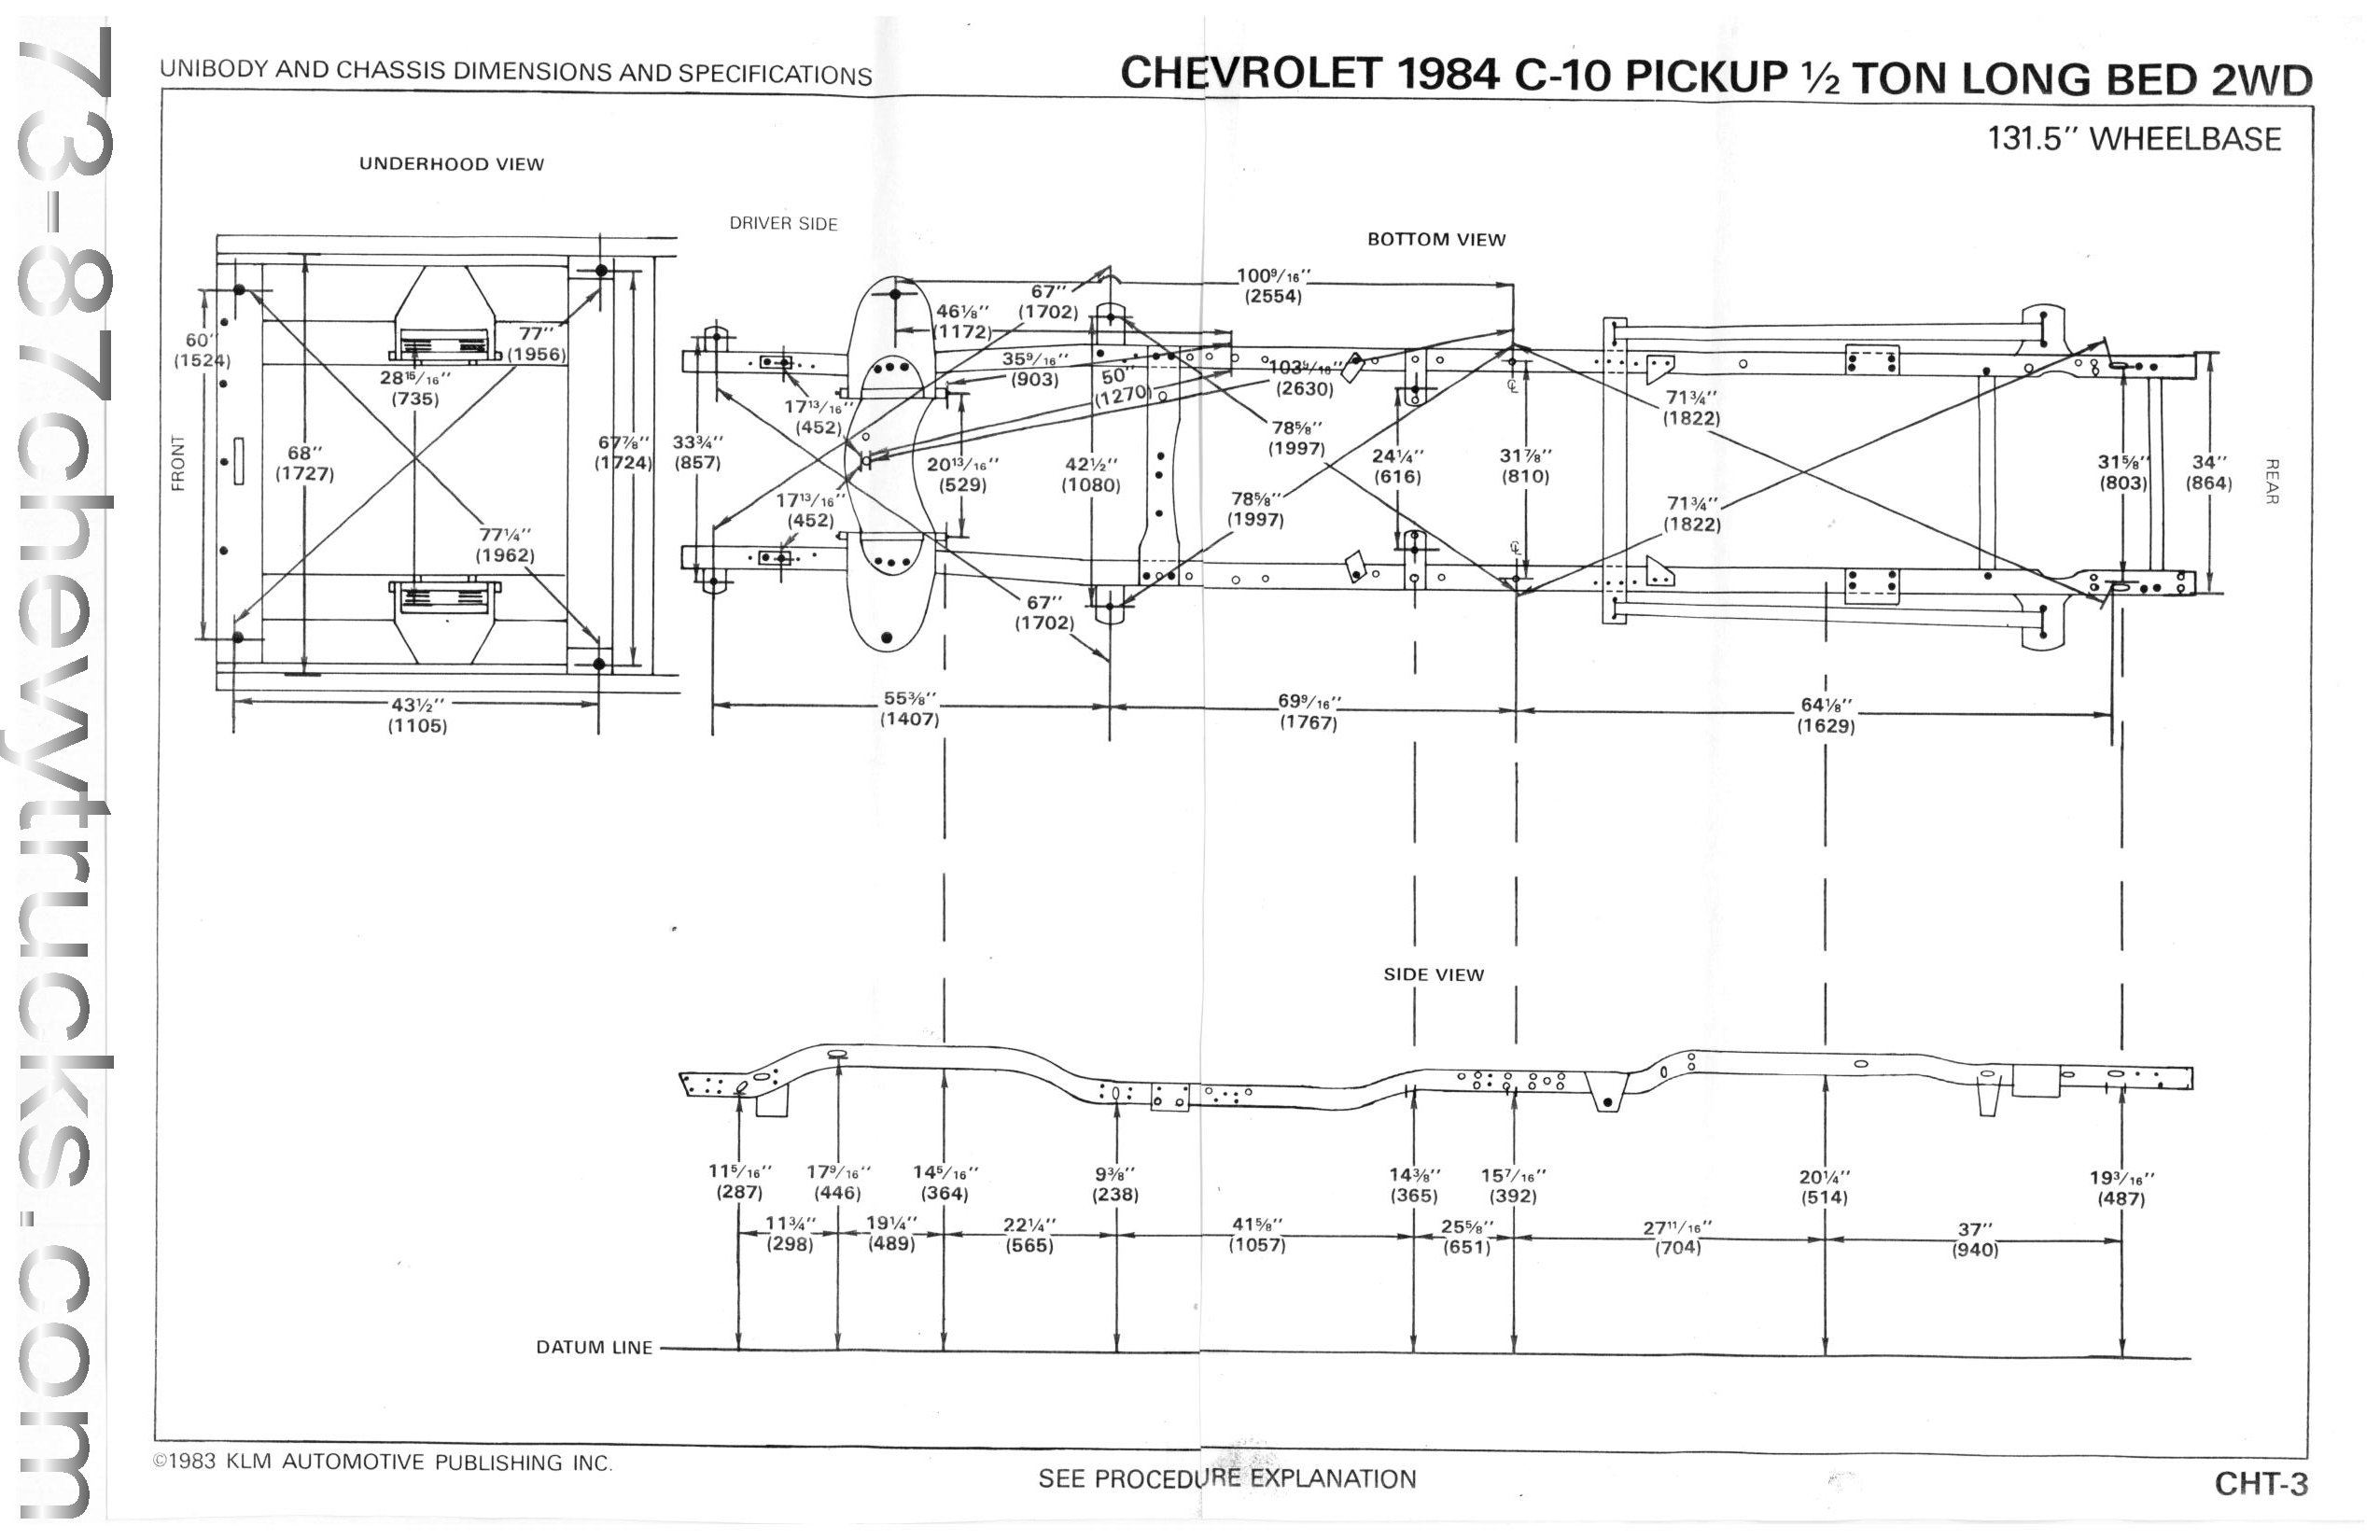 2002 chevy trailblazer front axle diagram 2010 silverado radio wiring best library s10 frame dimensions pictures to pin on pinterest differential 2004